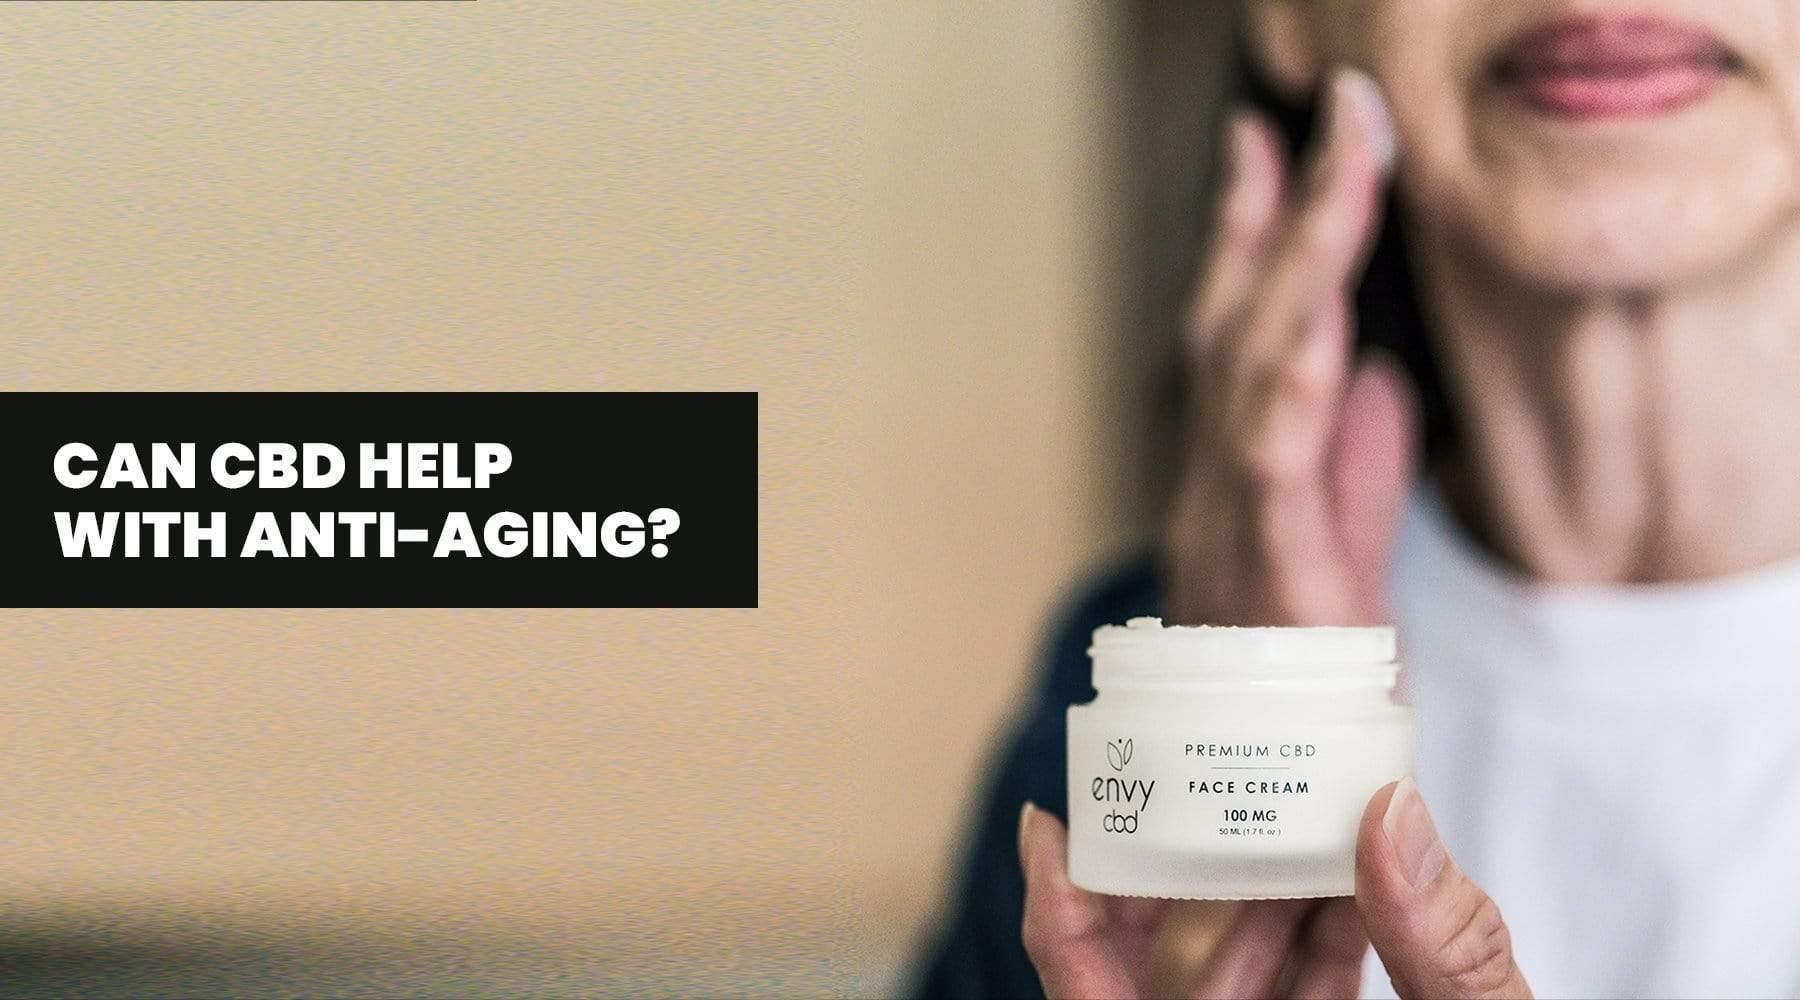 Can CBD Help With Anti-Aging?